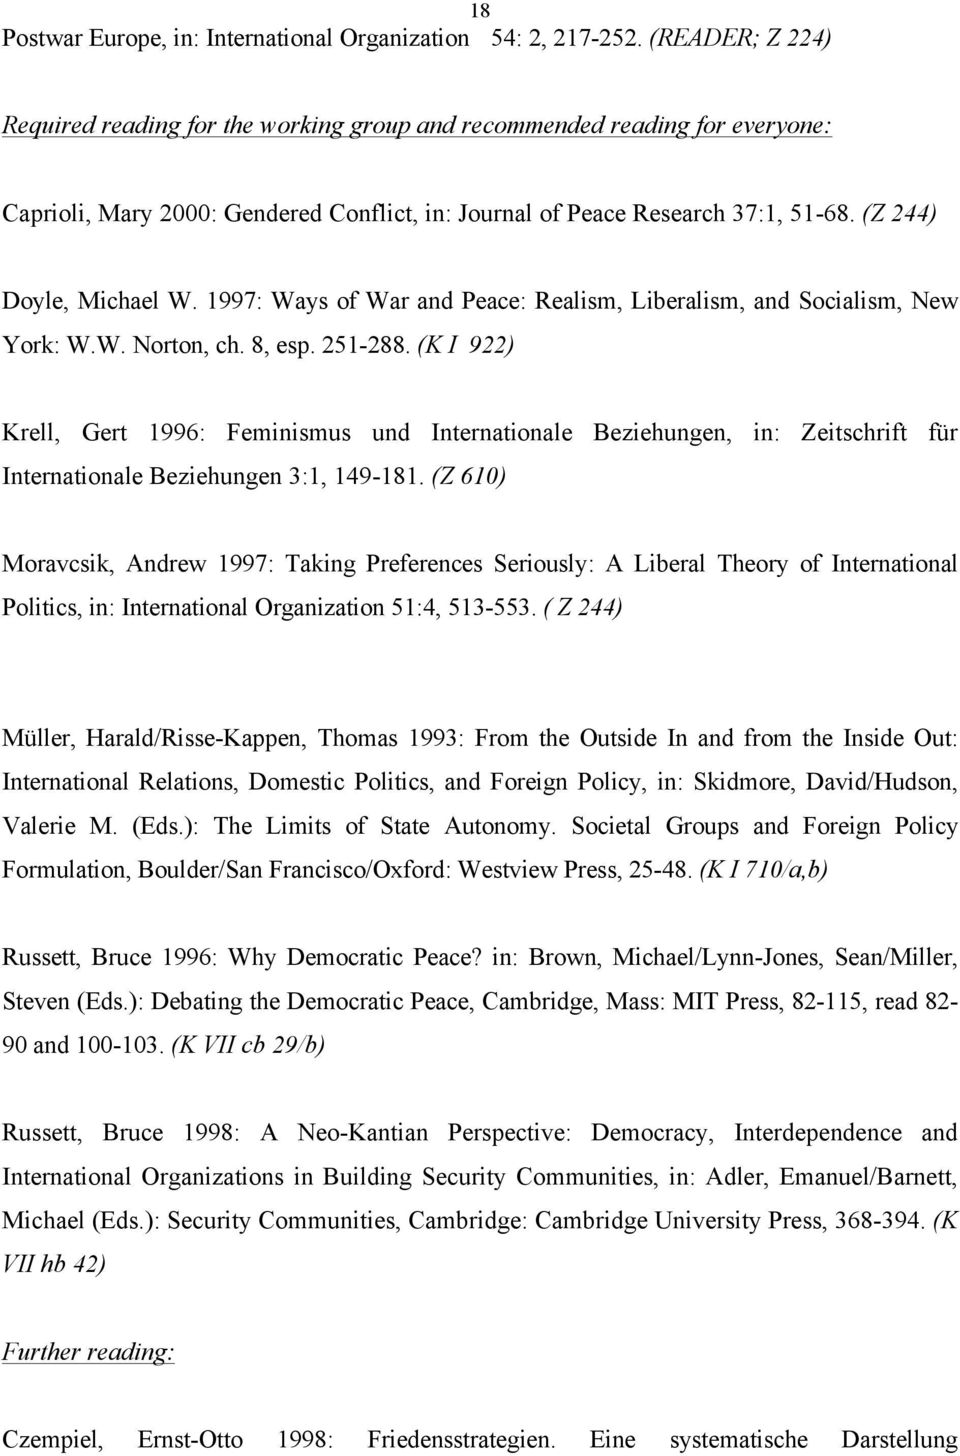 (Z 244) Doyle, Michael W. 1997: Ways of War and Peace: Realism, Liberalism, and Socialism, New York: W.W. Norton, ch. 8, esp. 251-288.